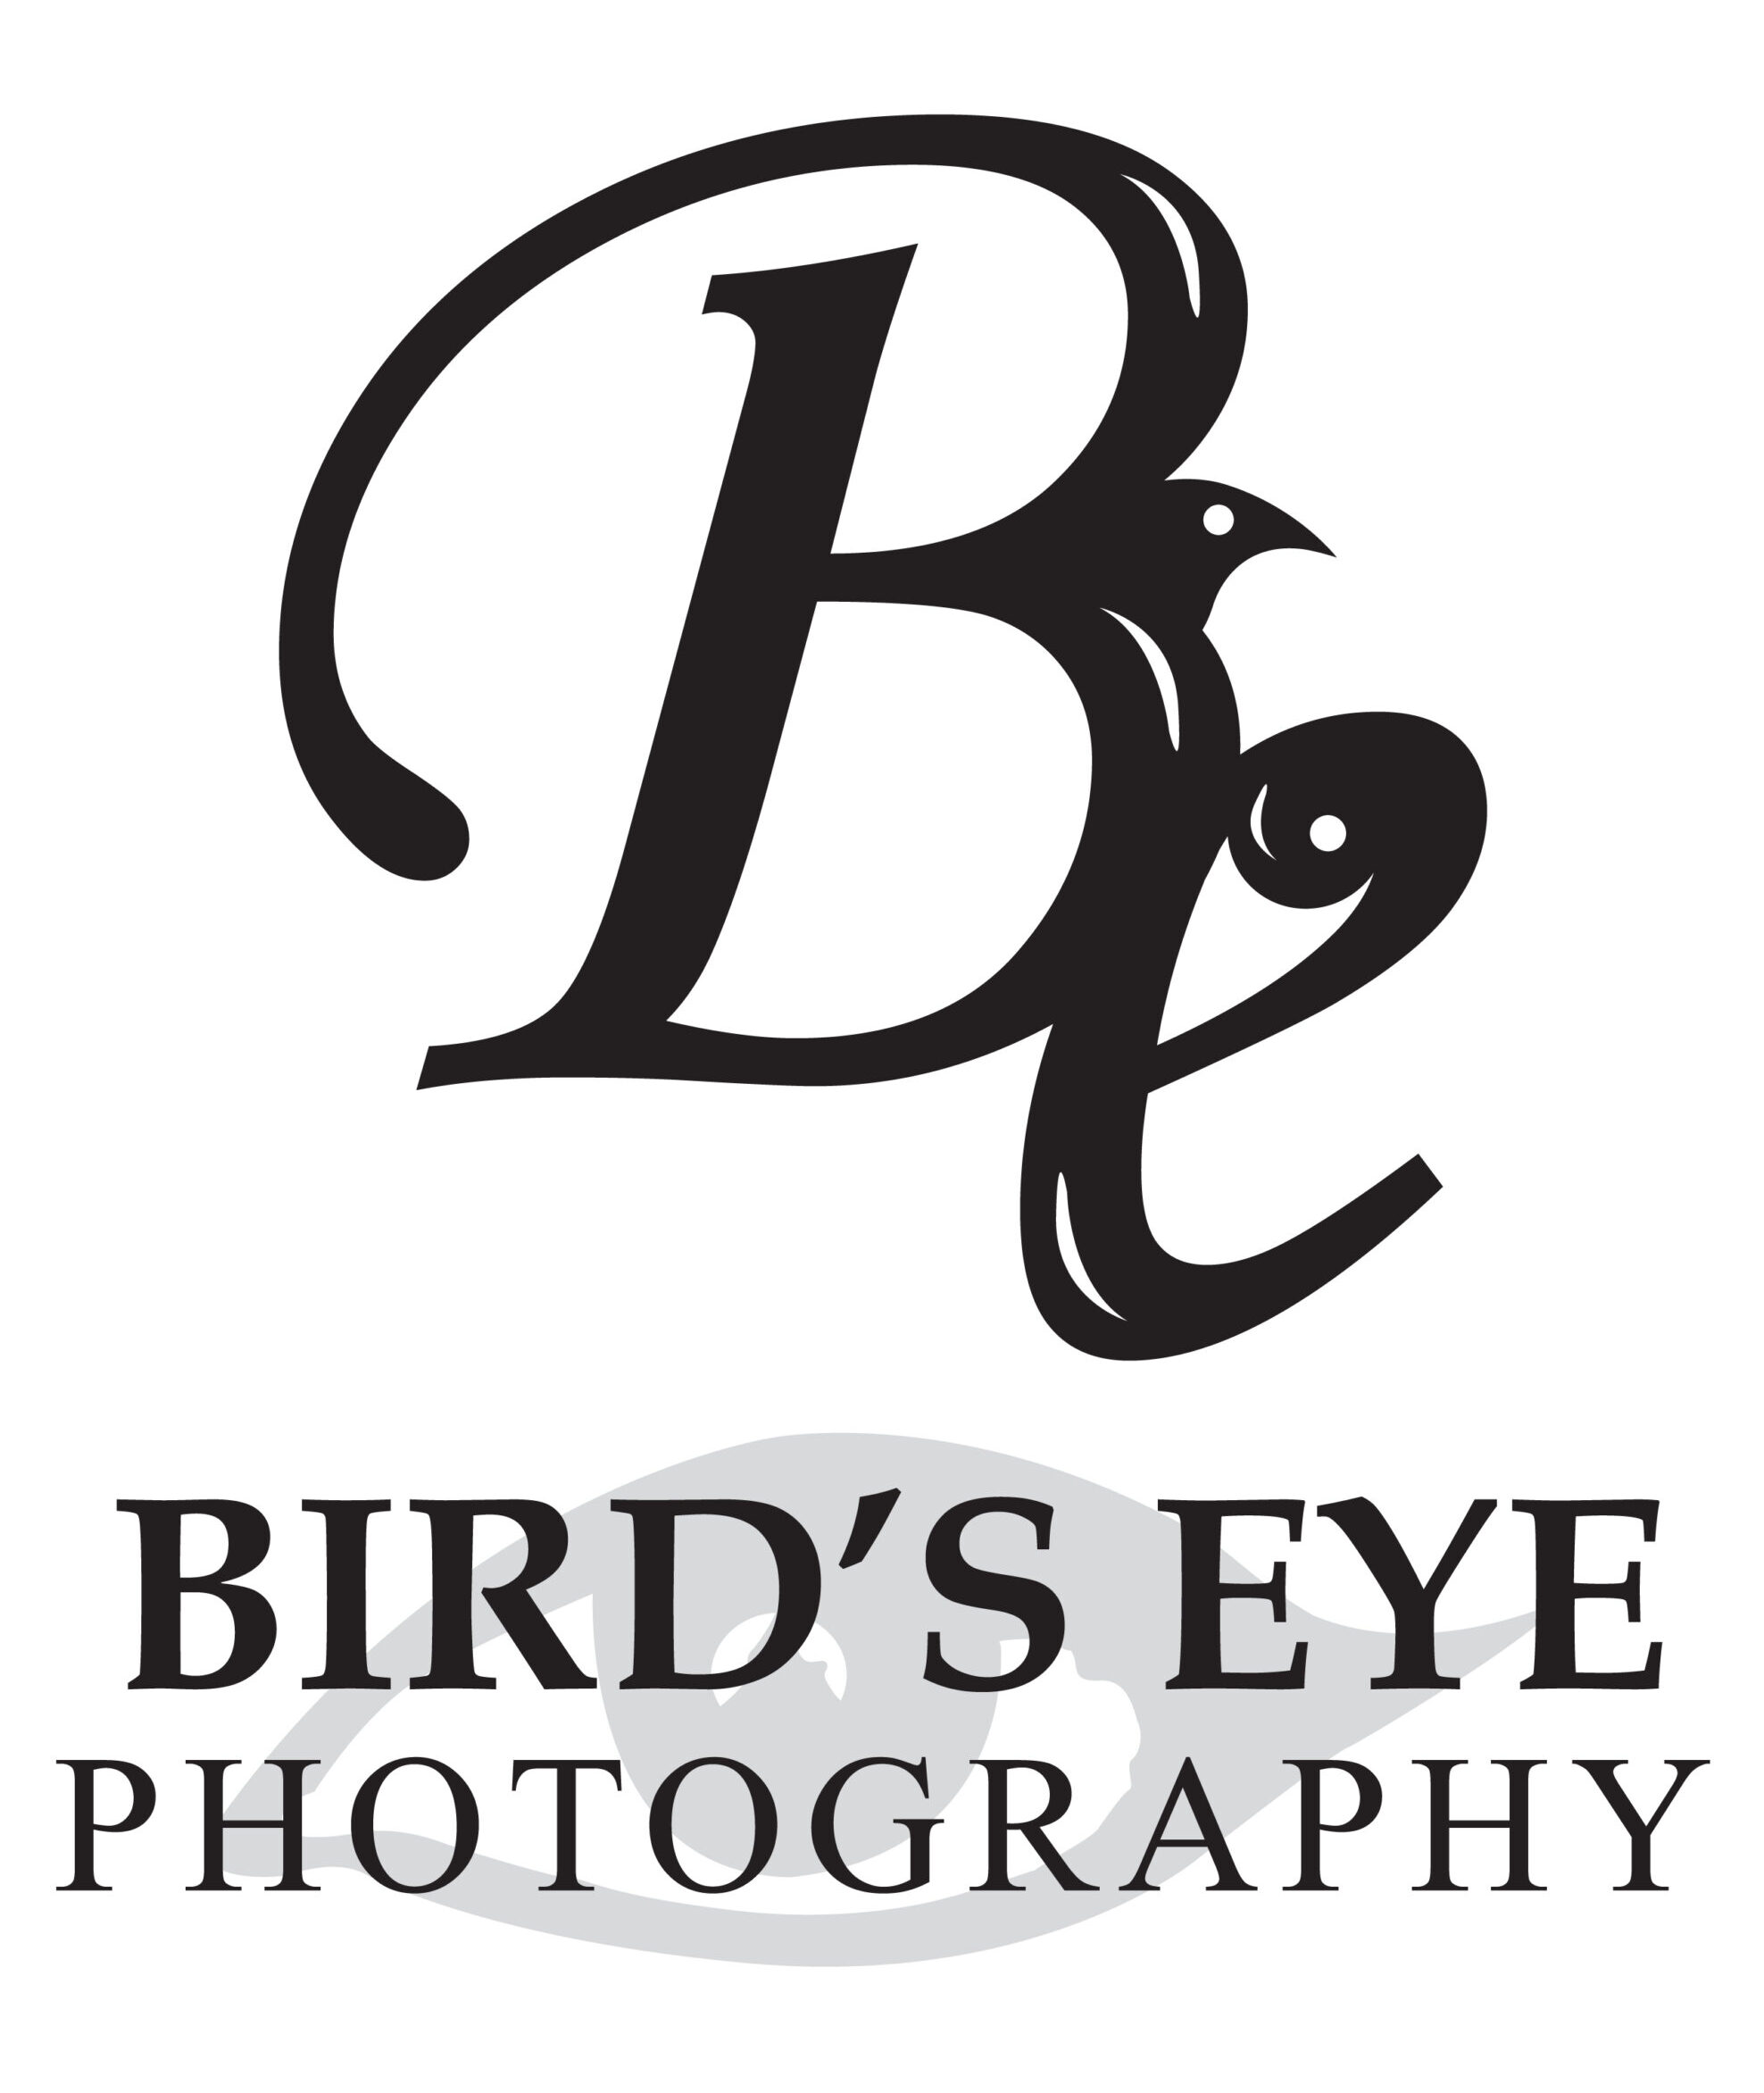 Bird's Eye Photography